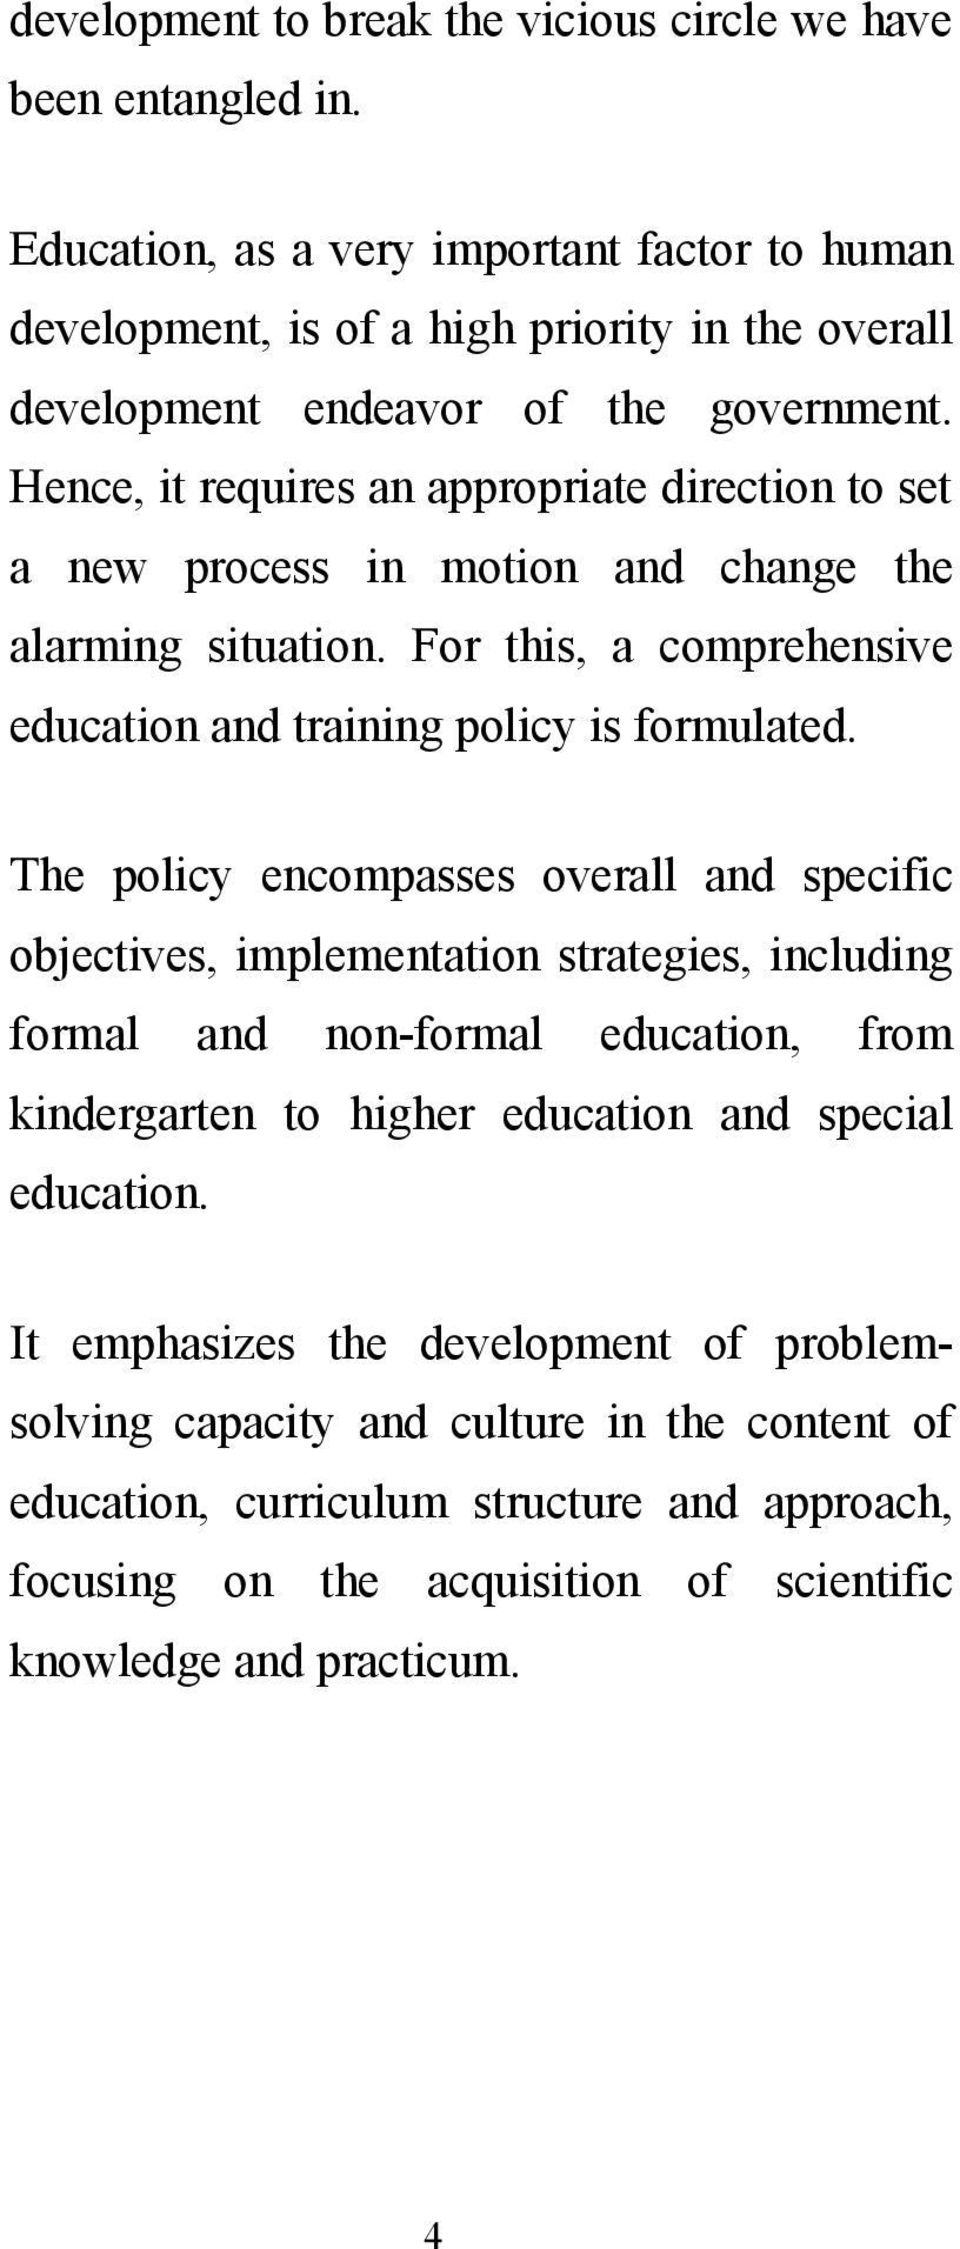 Hence, it requires an appropriate direction to set a new process in motion and change the alarming situation. For this, a comprehensive education and training policy is formulated.